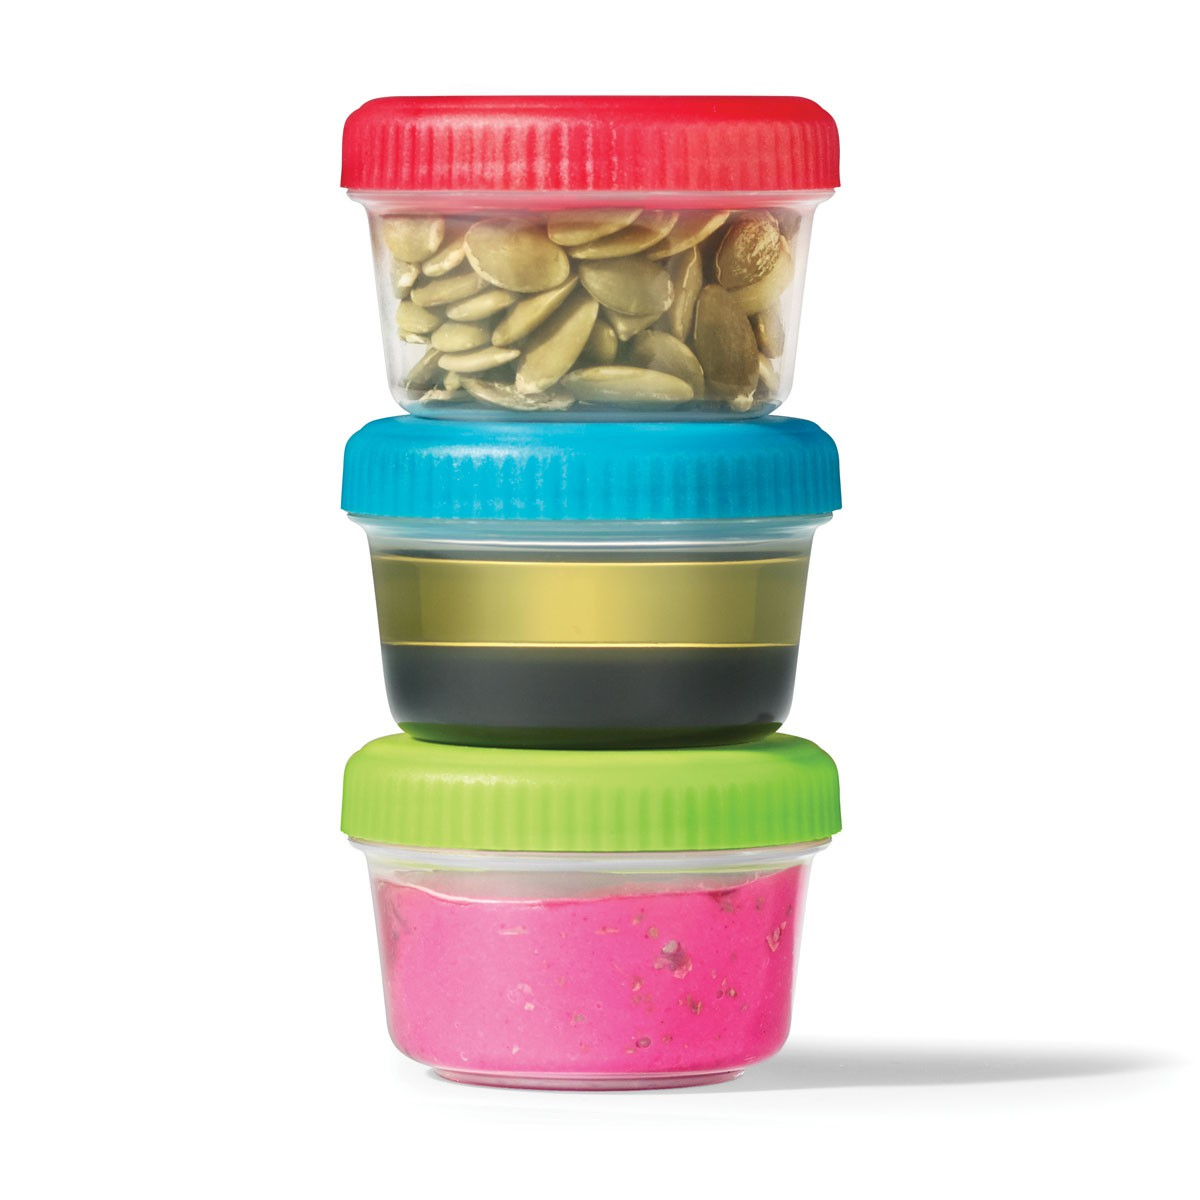 Easy Lunch Mini Containers | Set of 3